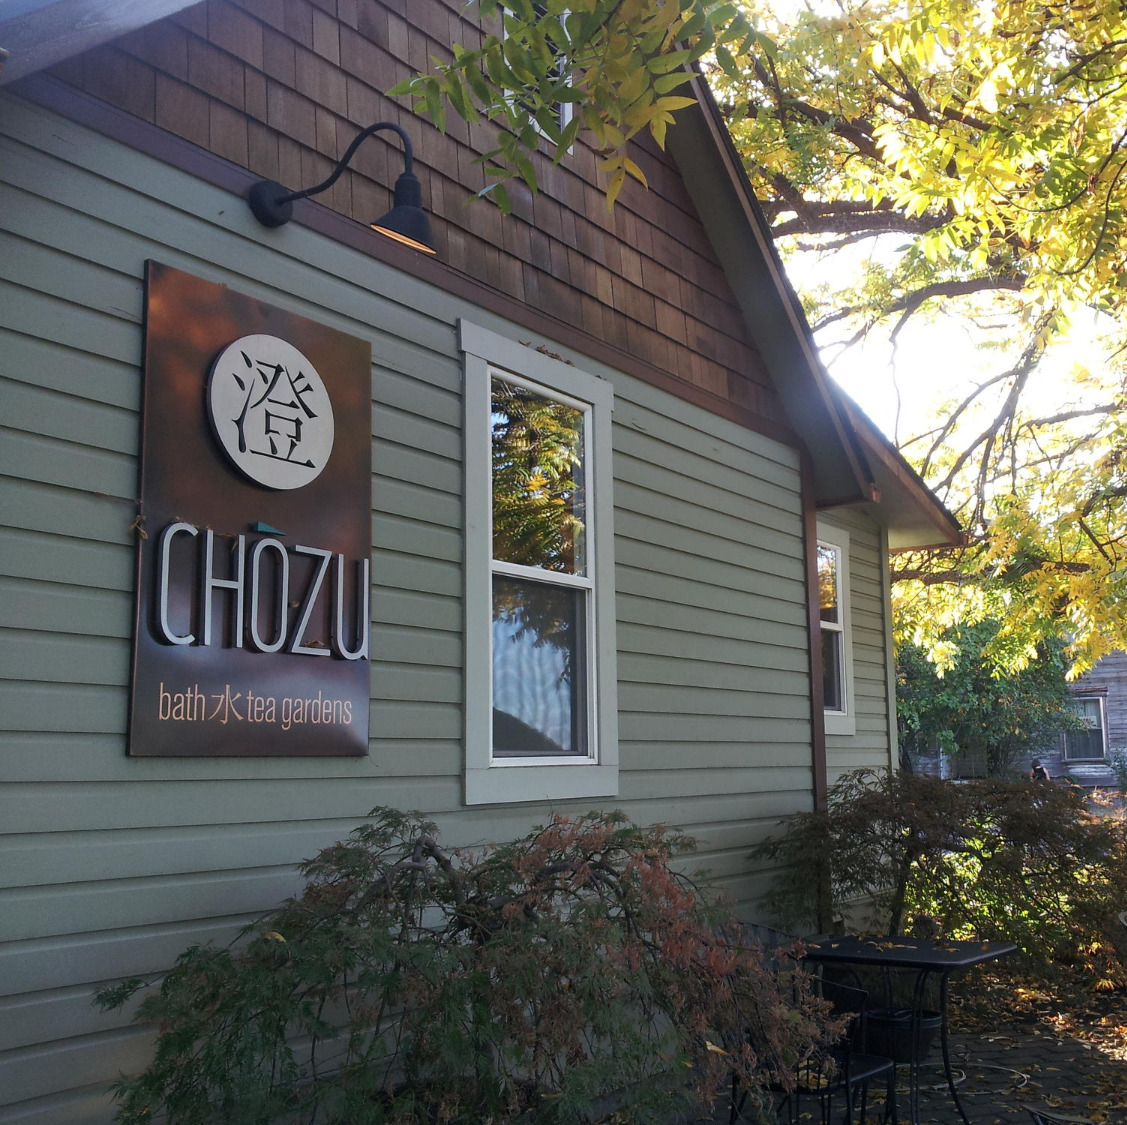 Chozu Bath & Tea Gardens